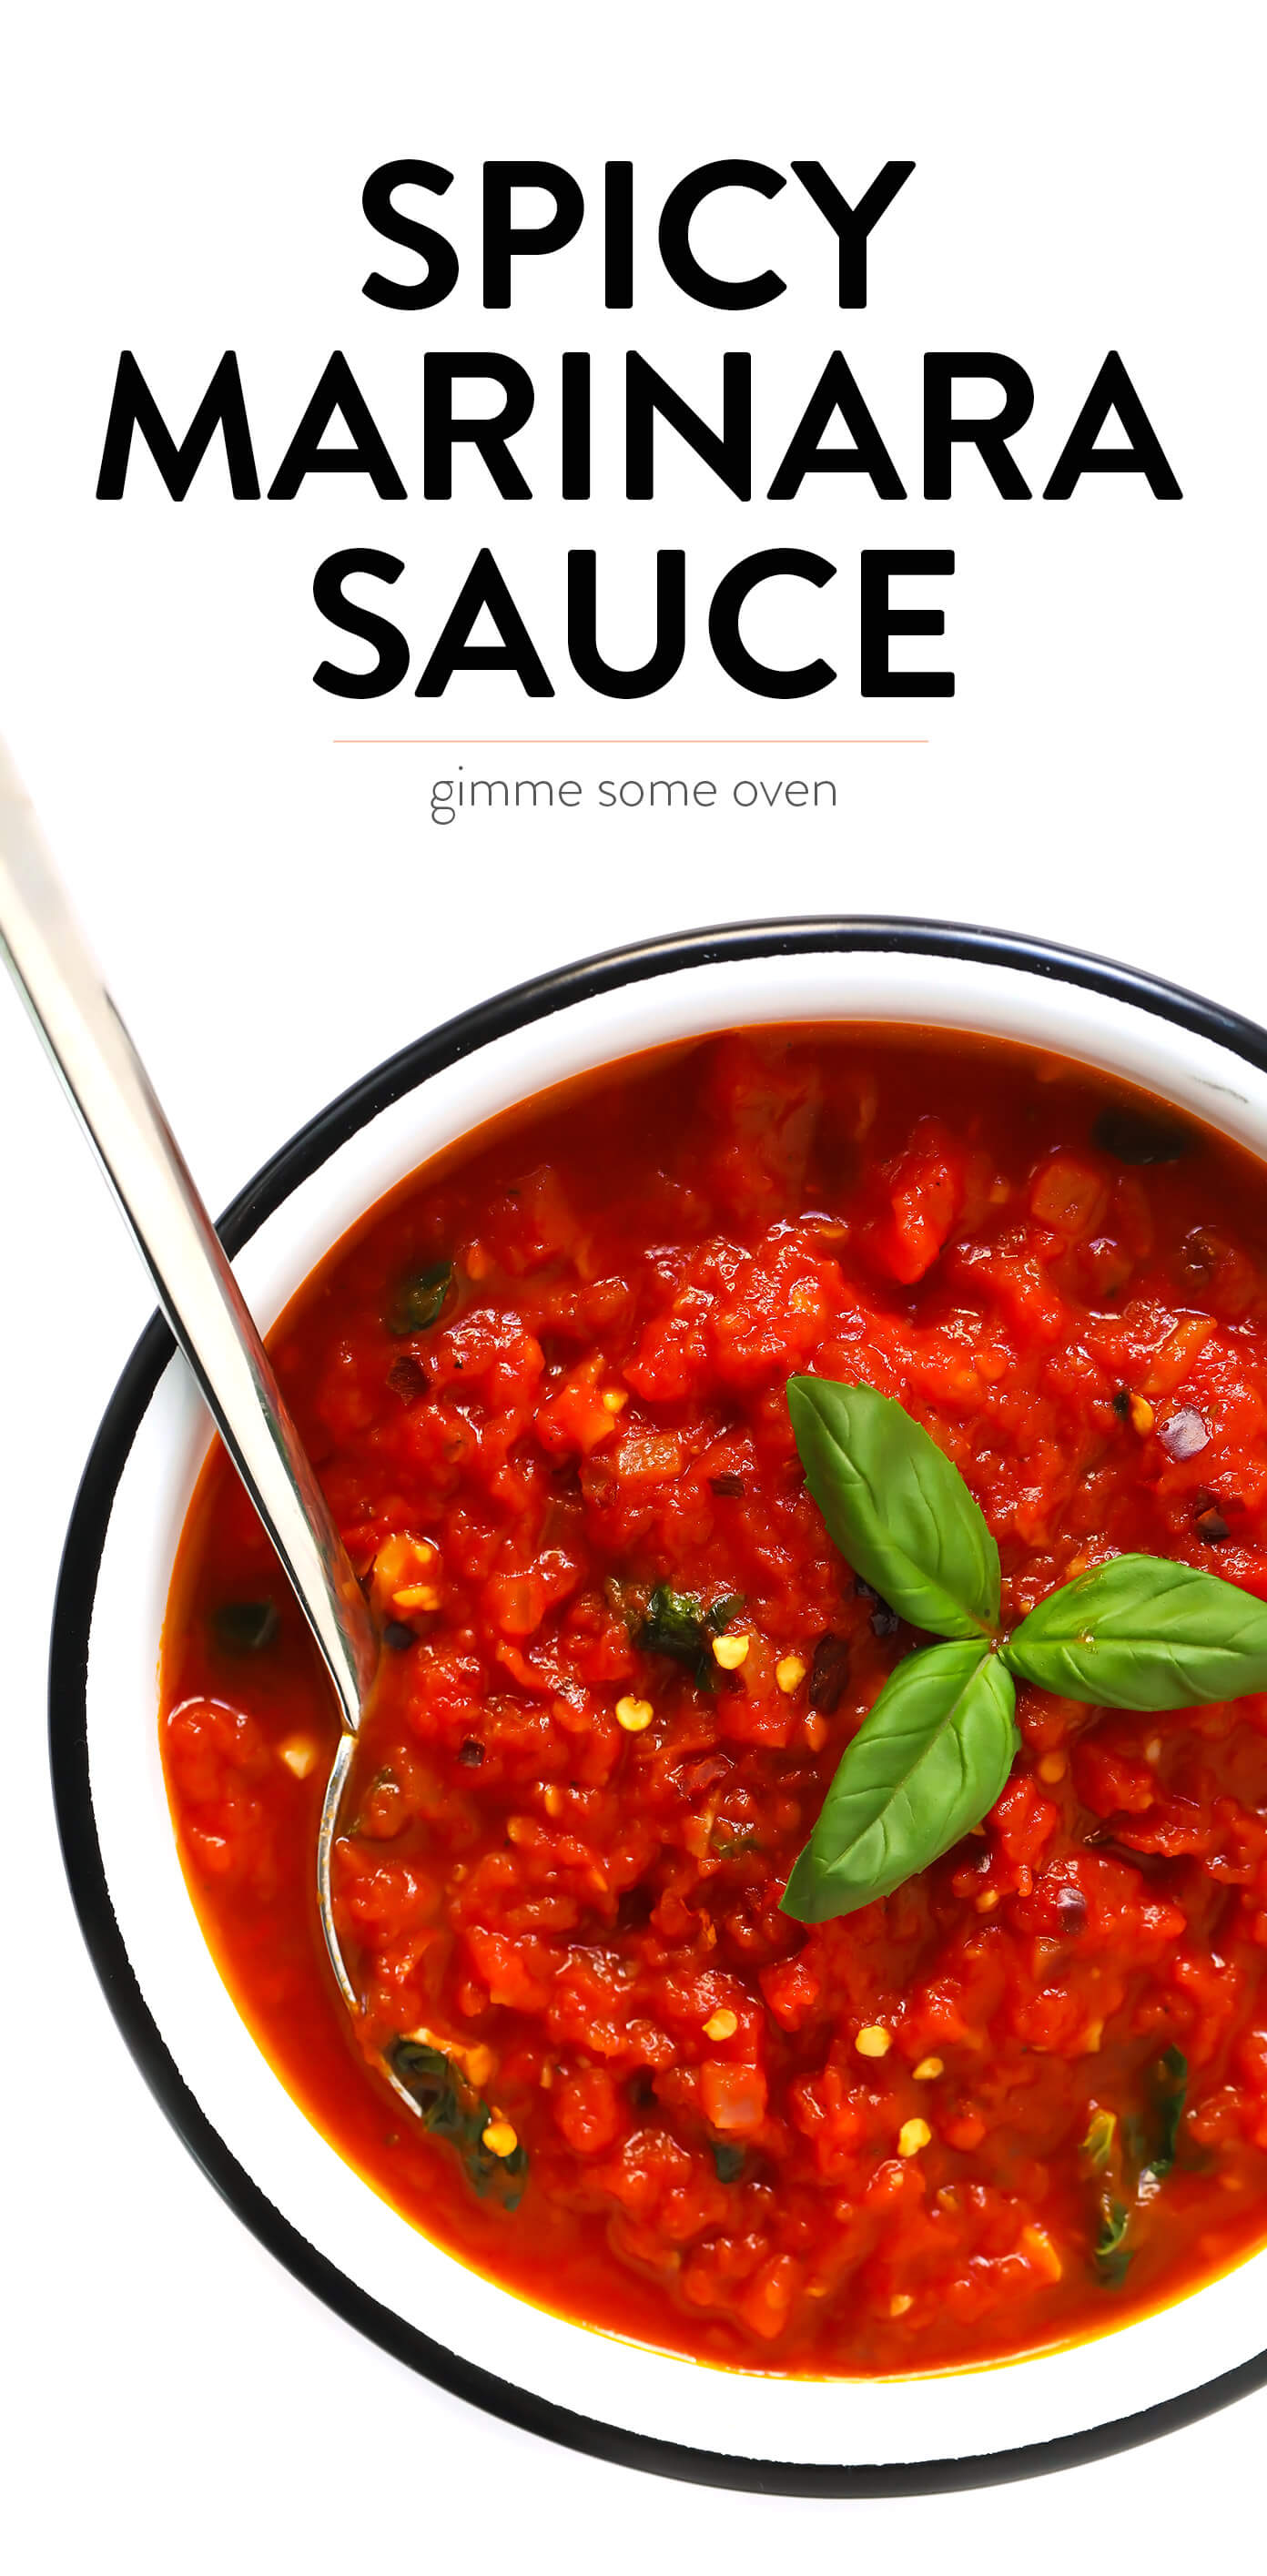 Spicy Arrabbiata Sauce Recipe with Basil